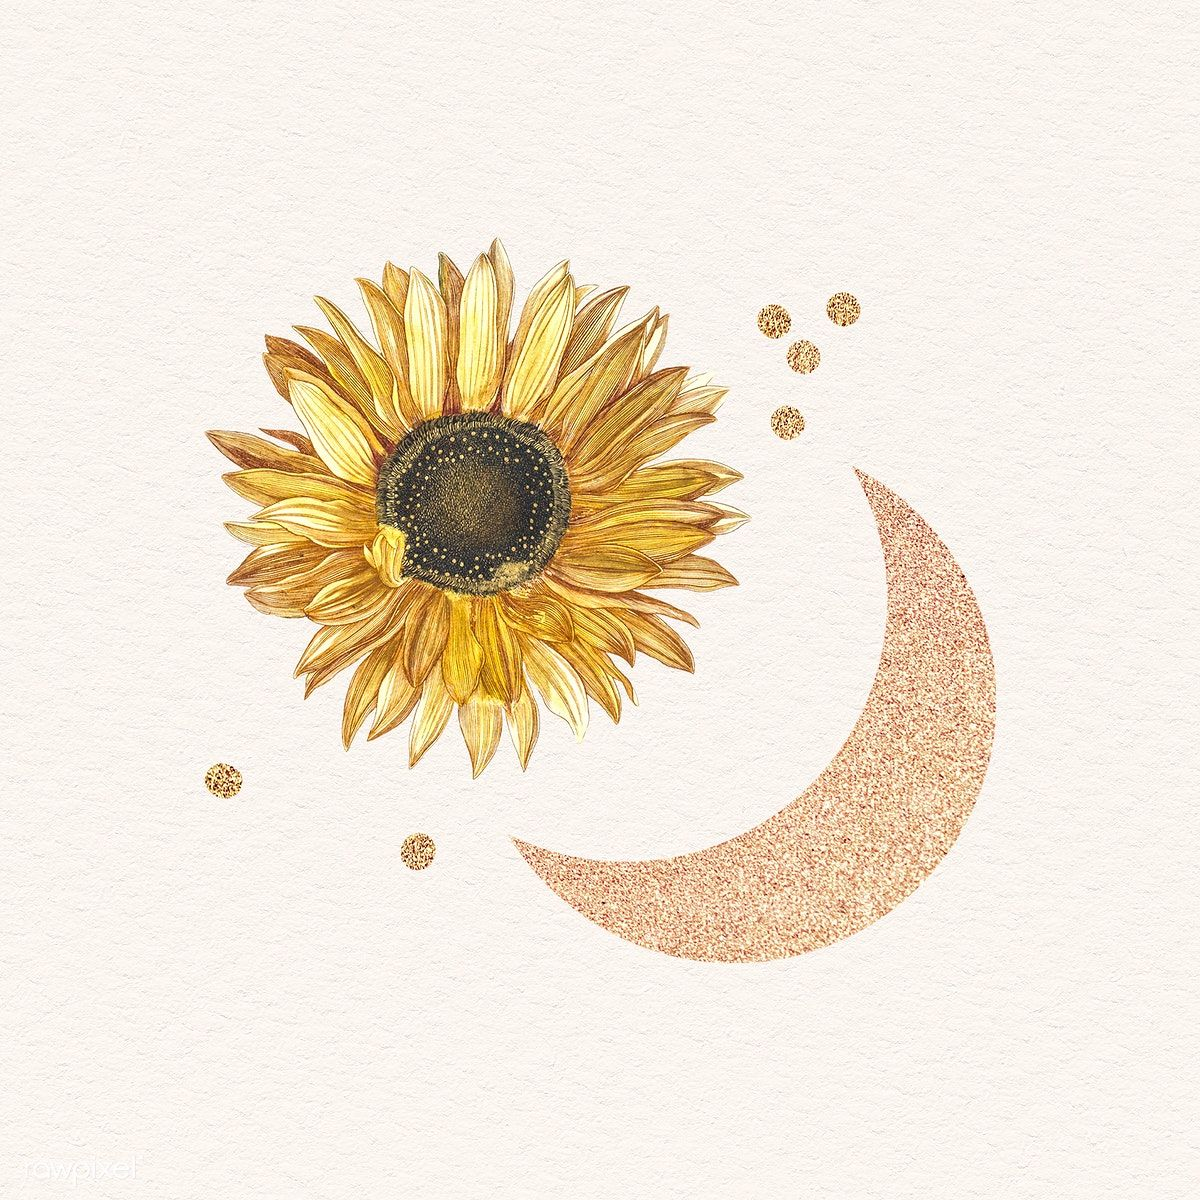 Download premium illustration of Blooming sunflower with a glittery